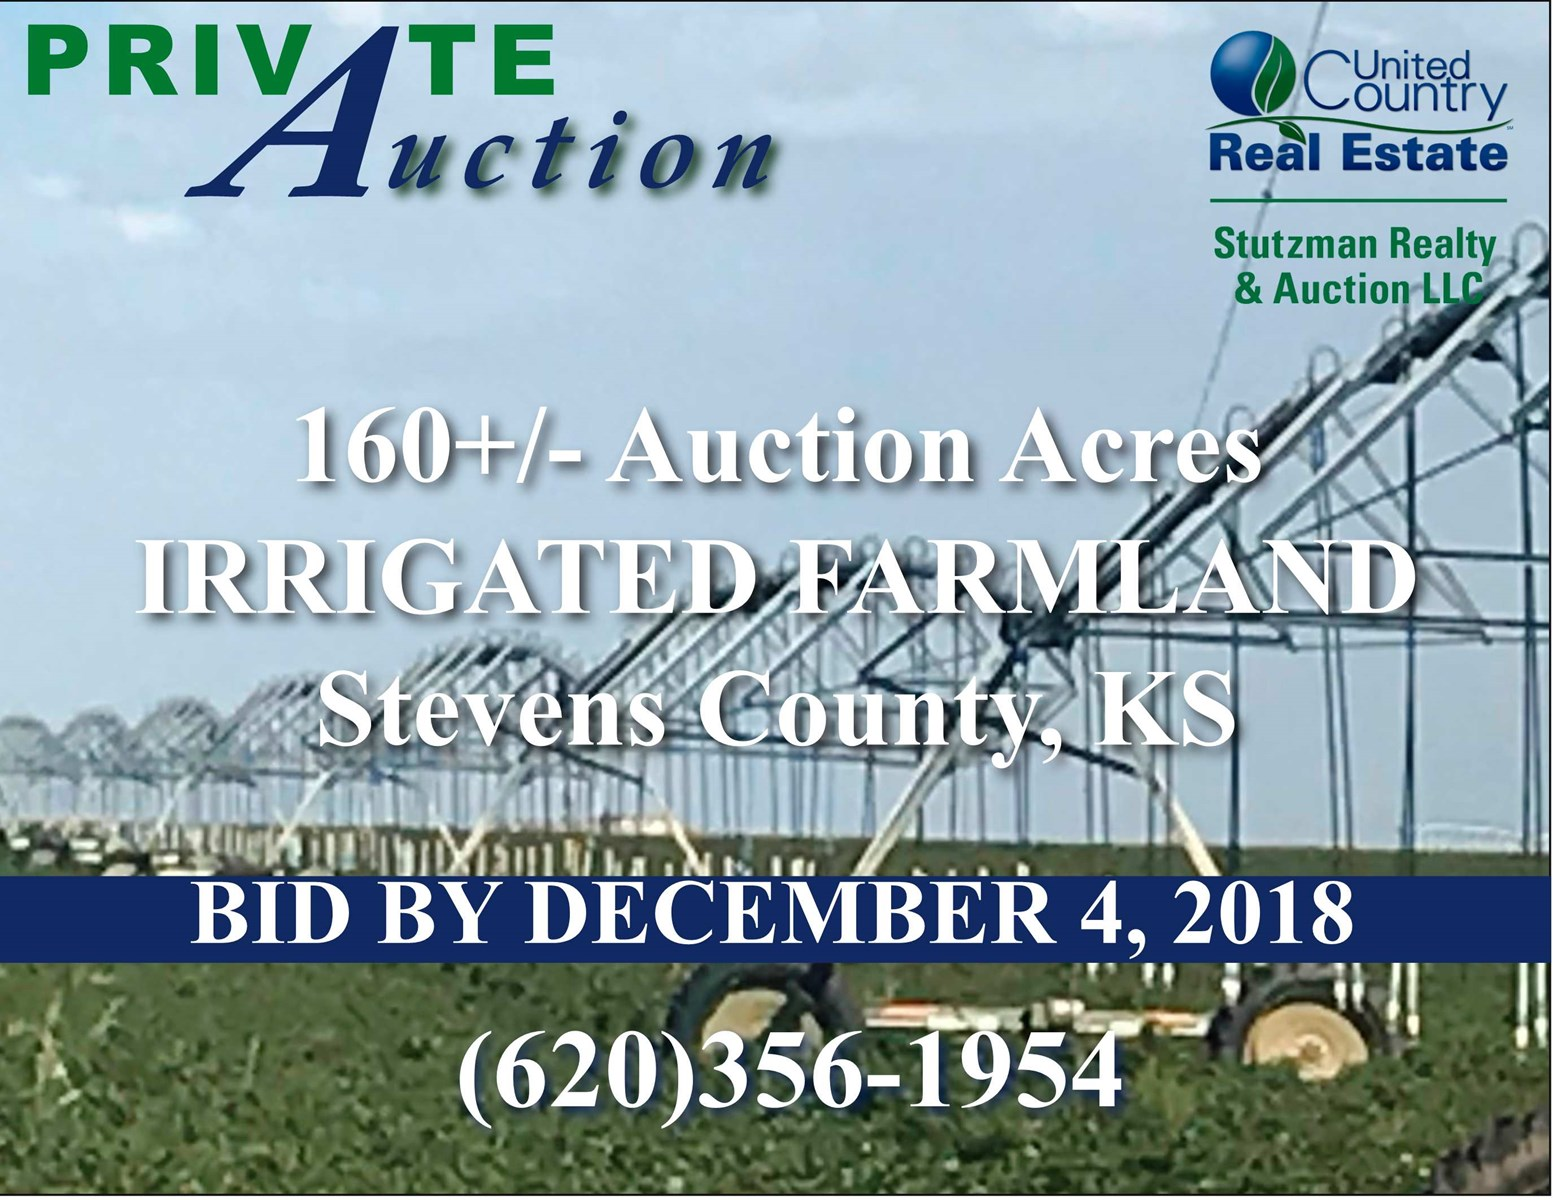 160+/- ACRES OF IRRIGATED FARMLAND - STEVENS COUNTY, KANSAS